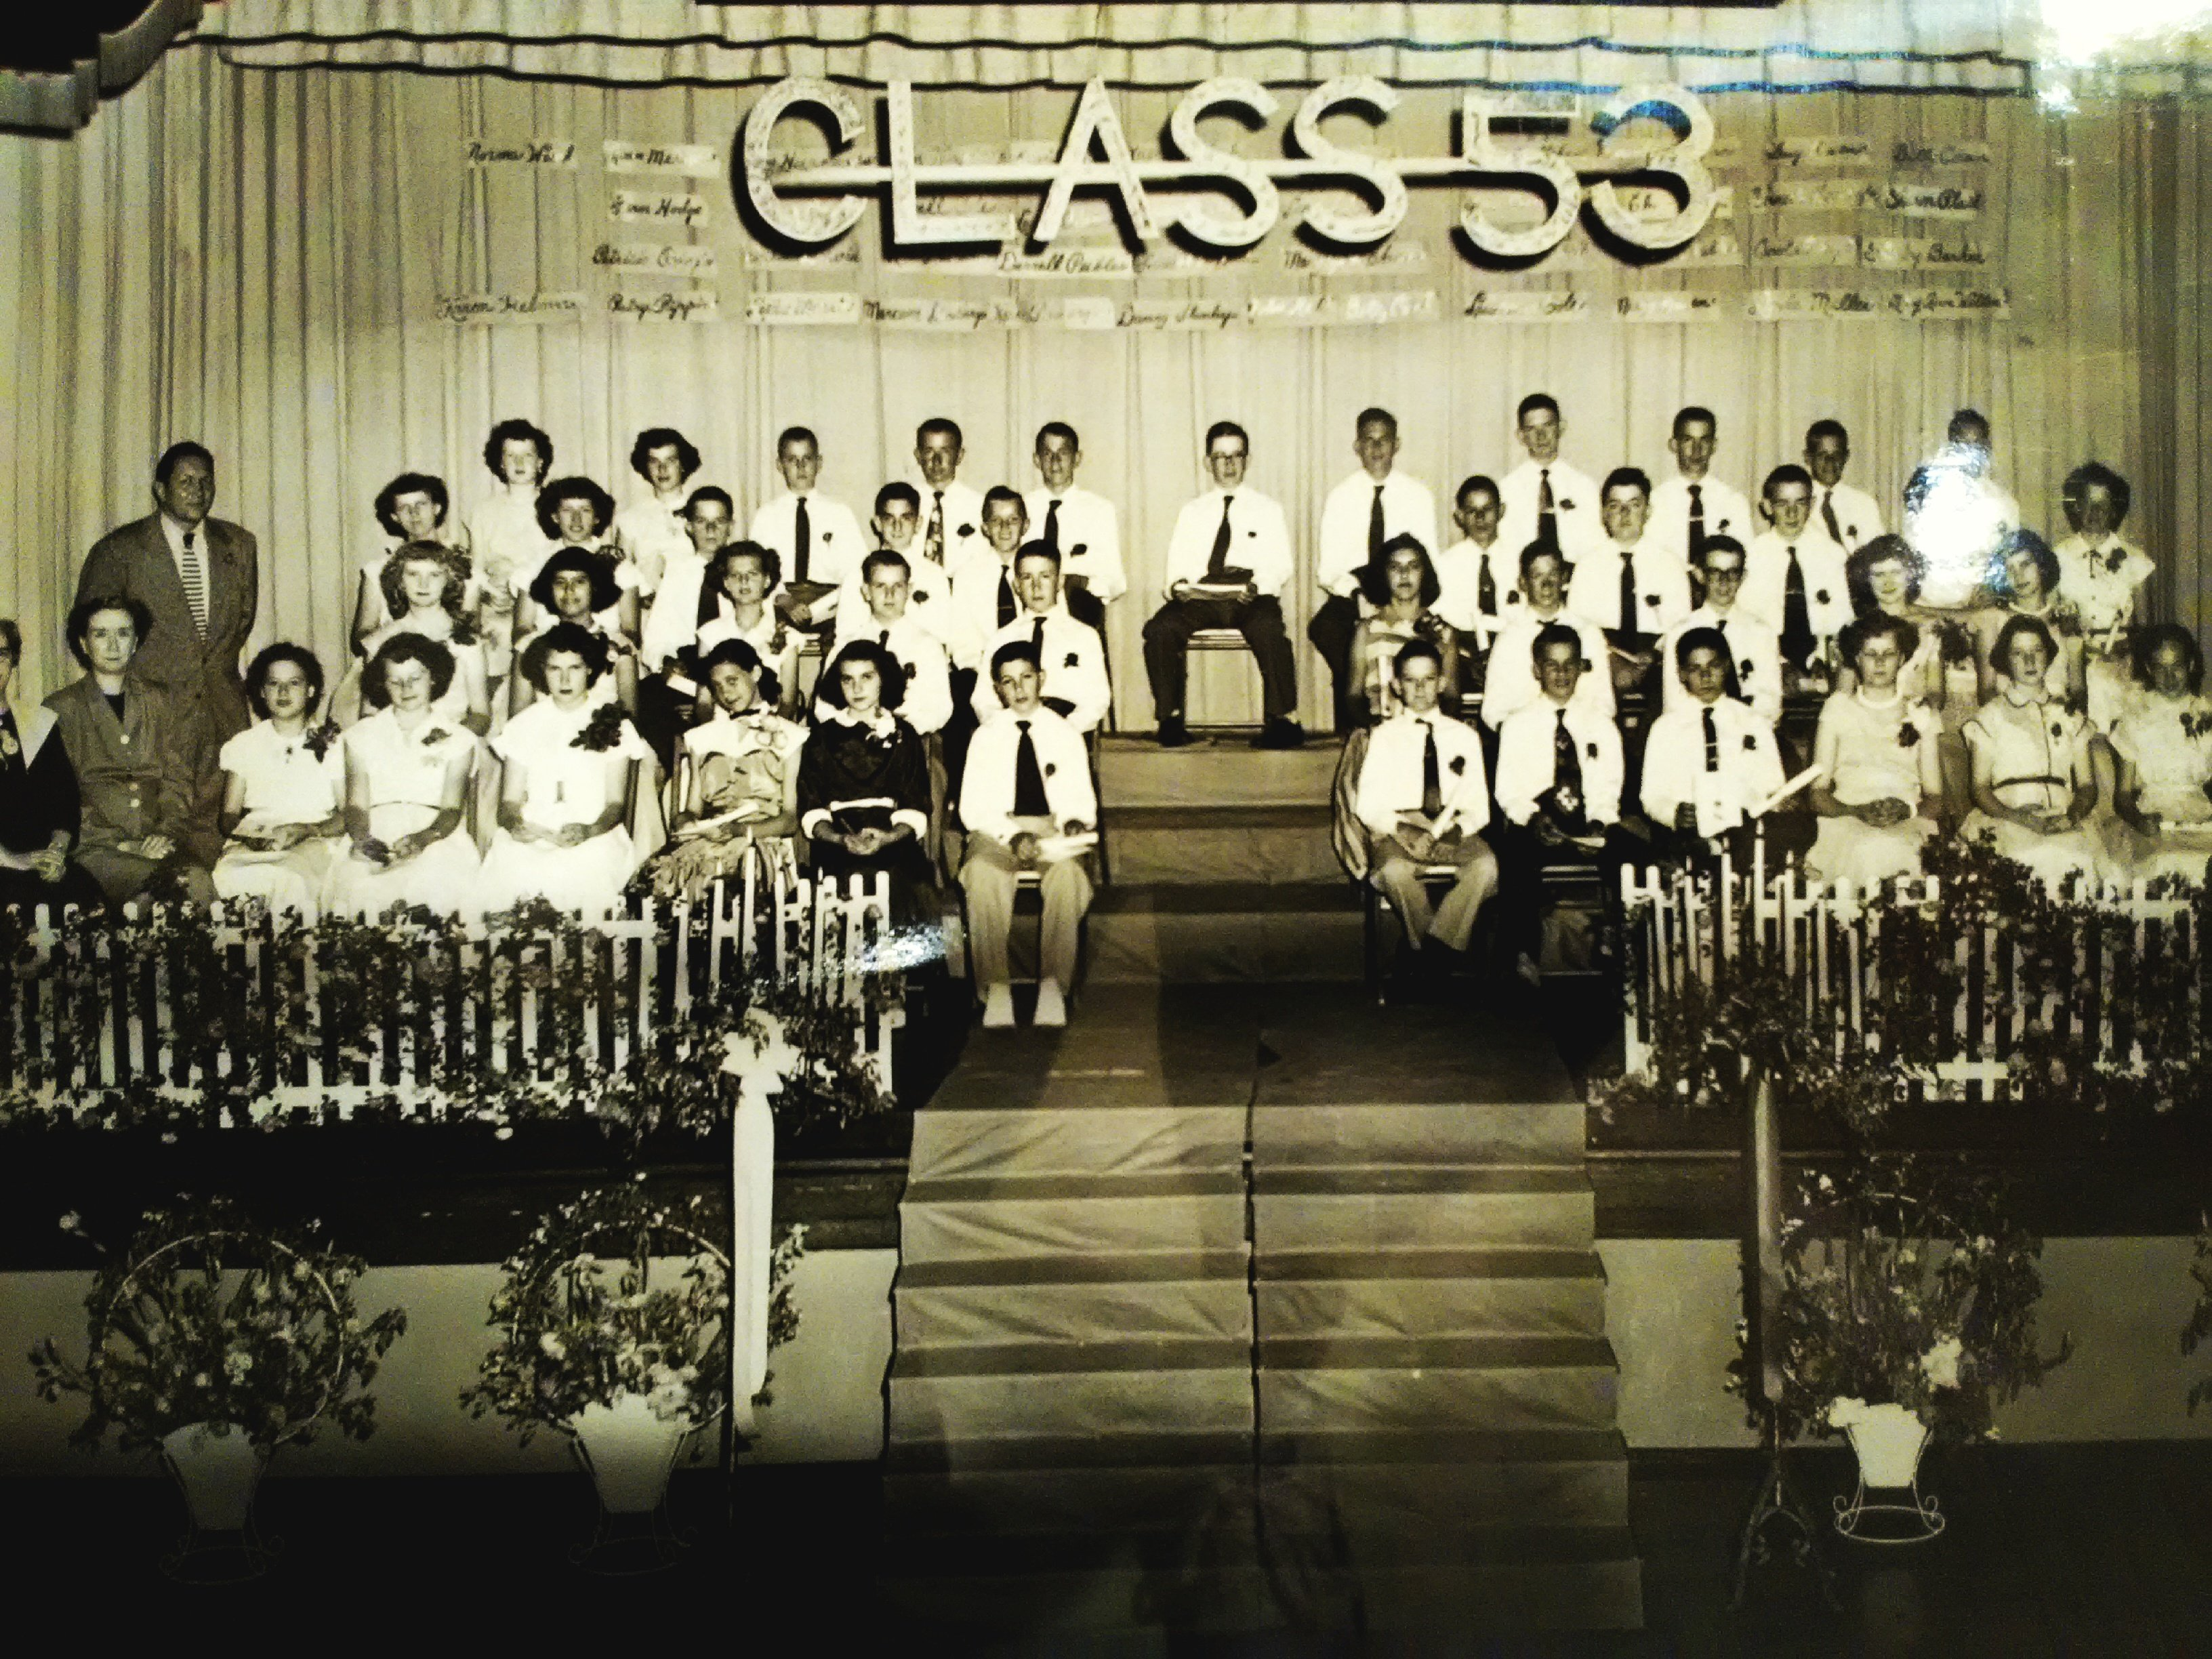 1953 8th grade (Junior High School) graduation at Eugene Field School. Photograph featured  in 175th Anniversary of Carthage exhibit at the Powers Museum in 2017.